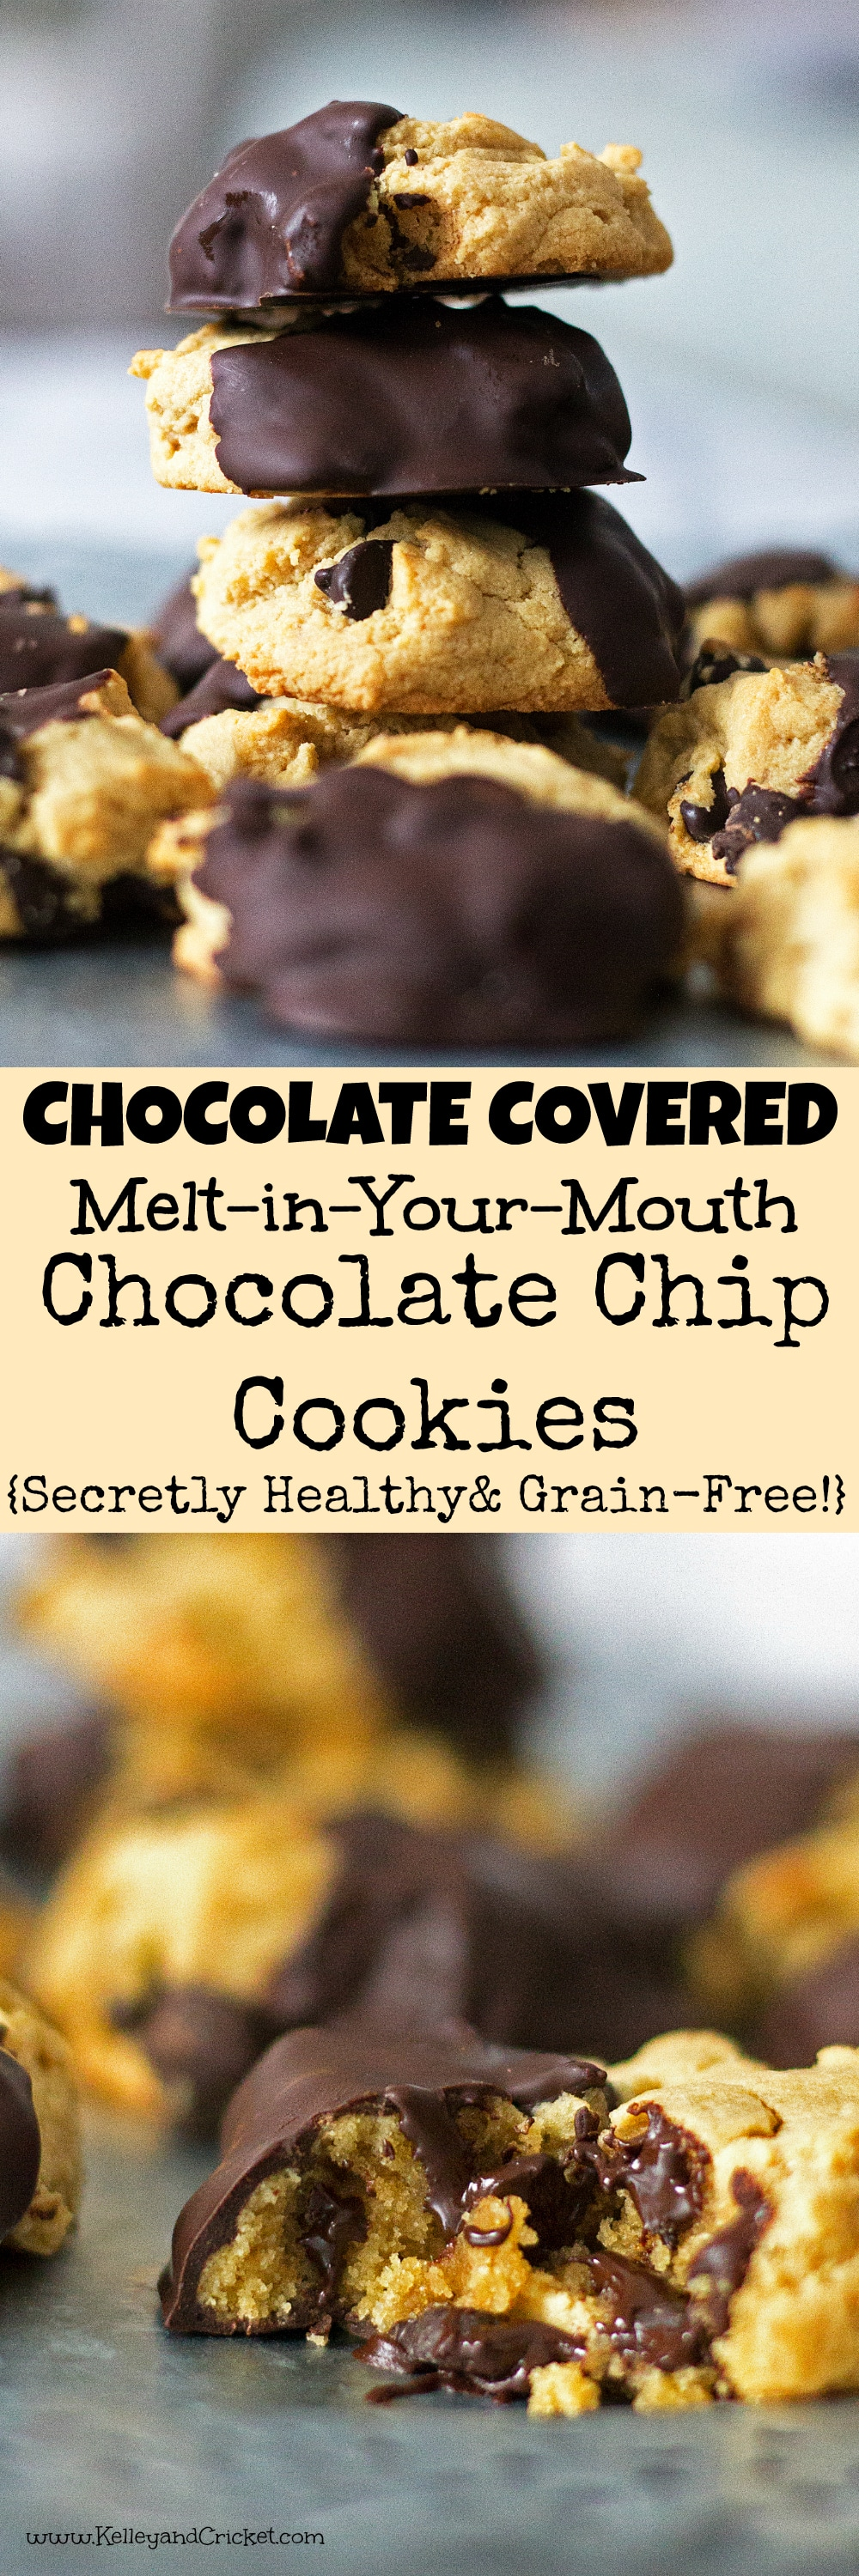 Chocolate-Dipped Chocolate Chip Cookies - Kelley and Cricket